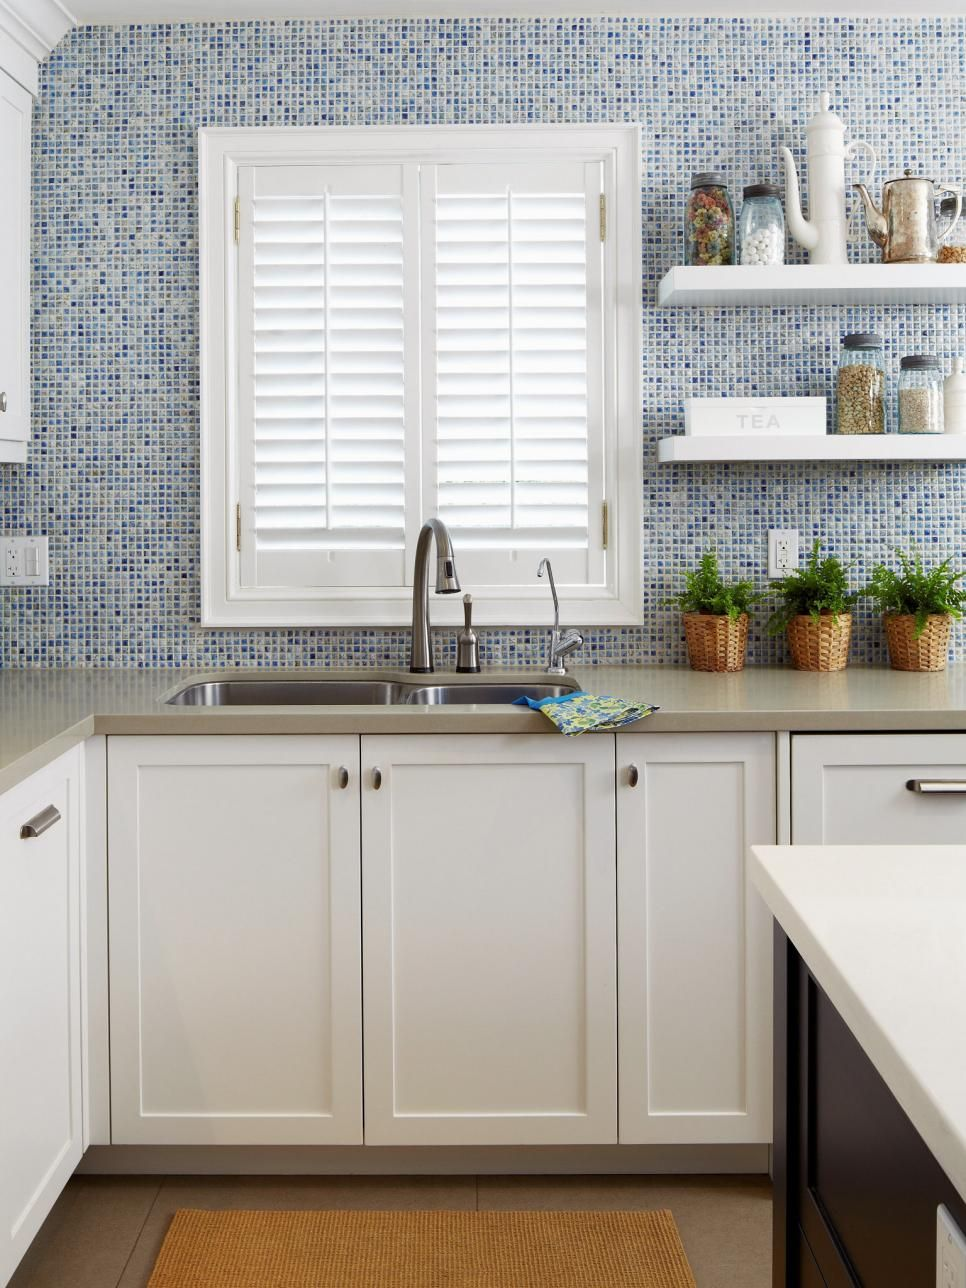 10 Winning Kitchen Window Treatment Ideas 10